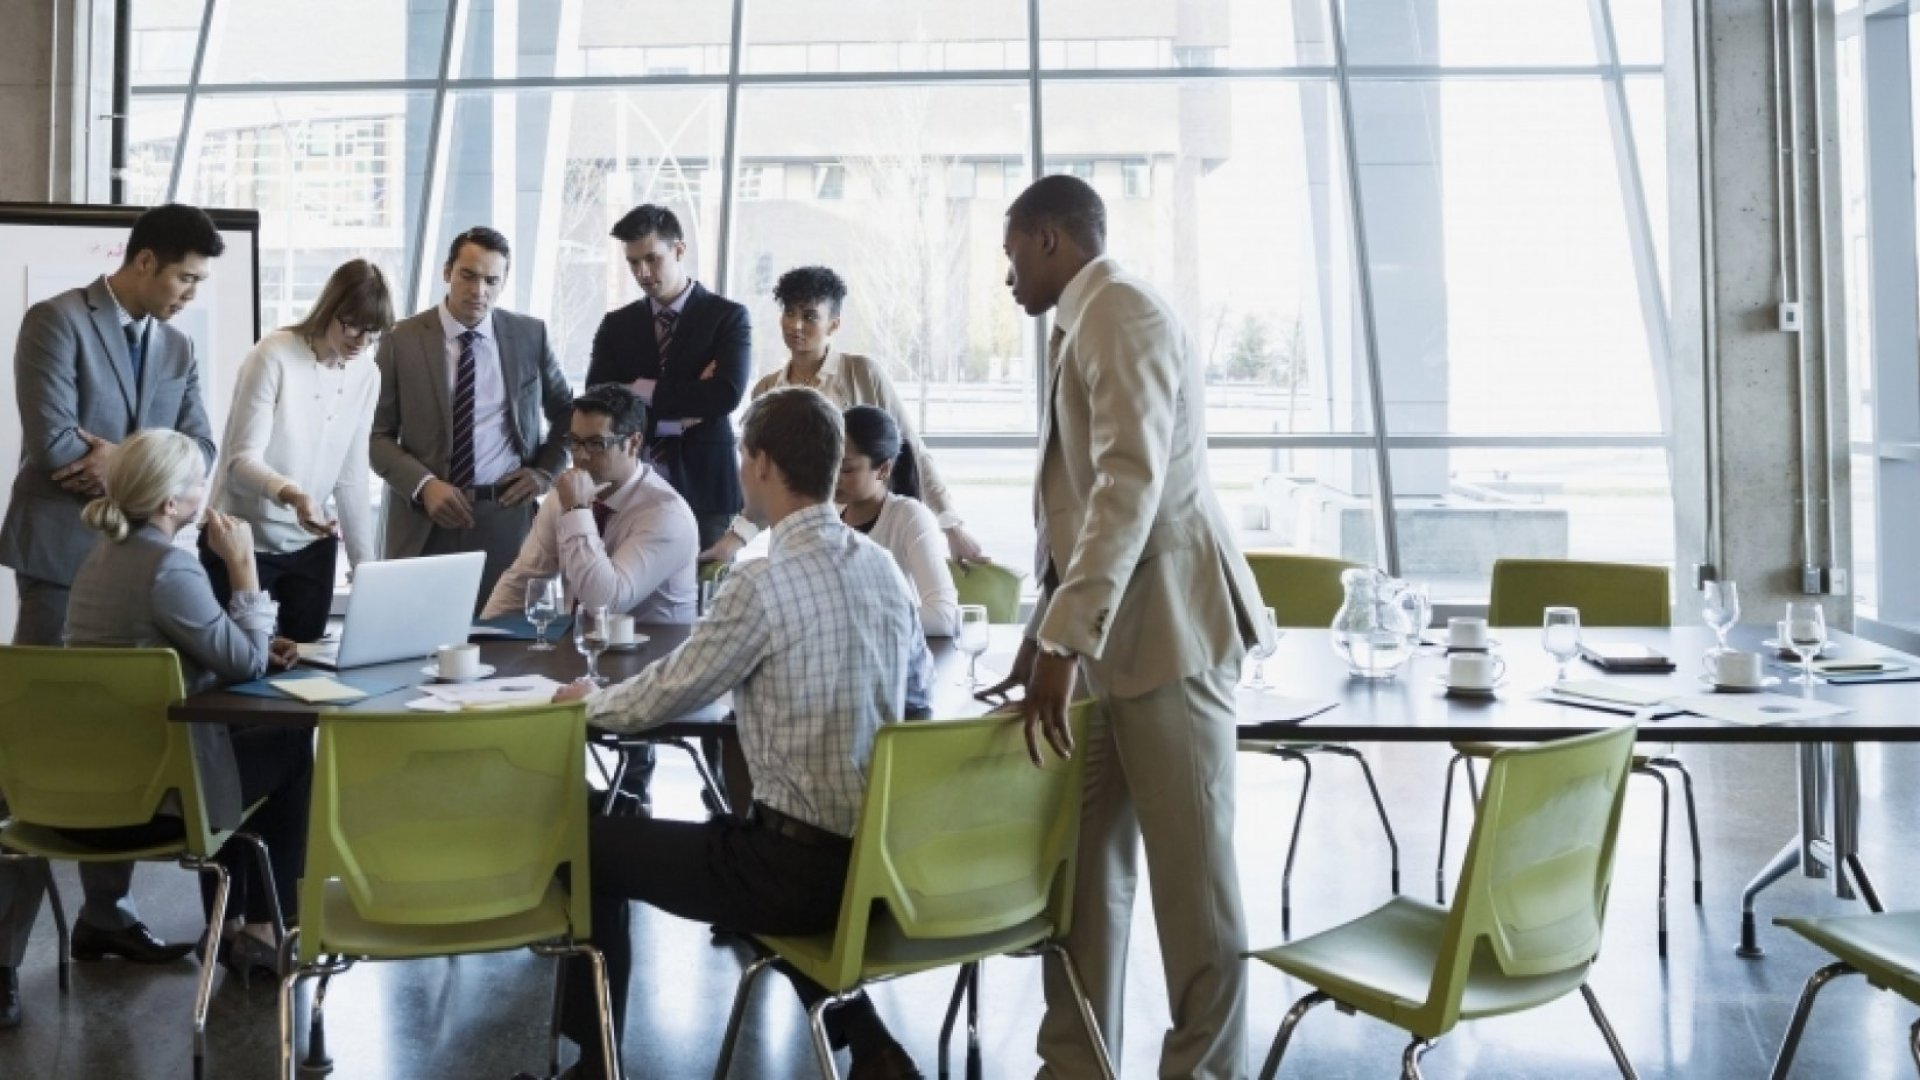 Building Relationships at Work Starts With Access